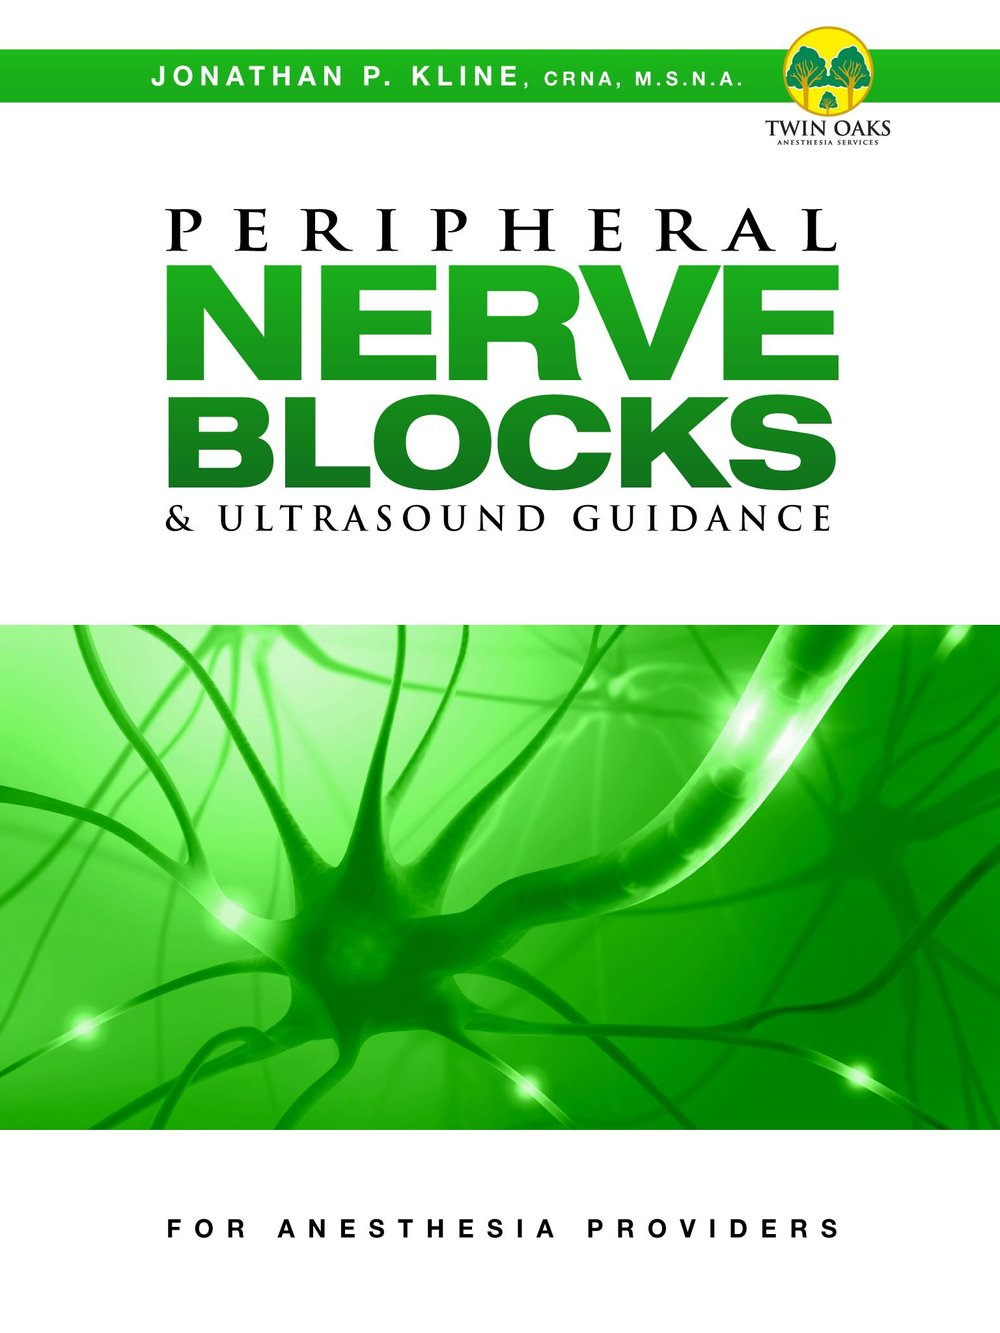 Peripheral Nerve Blocks.jpg